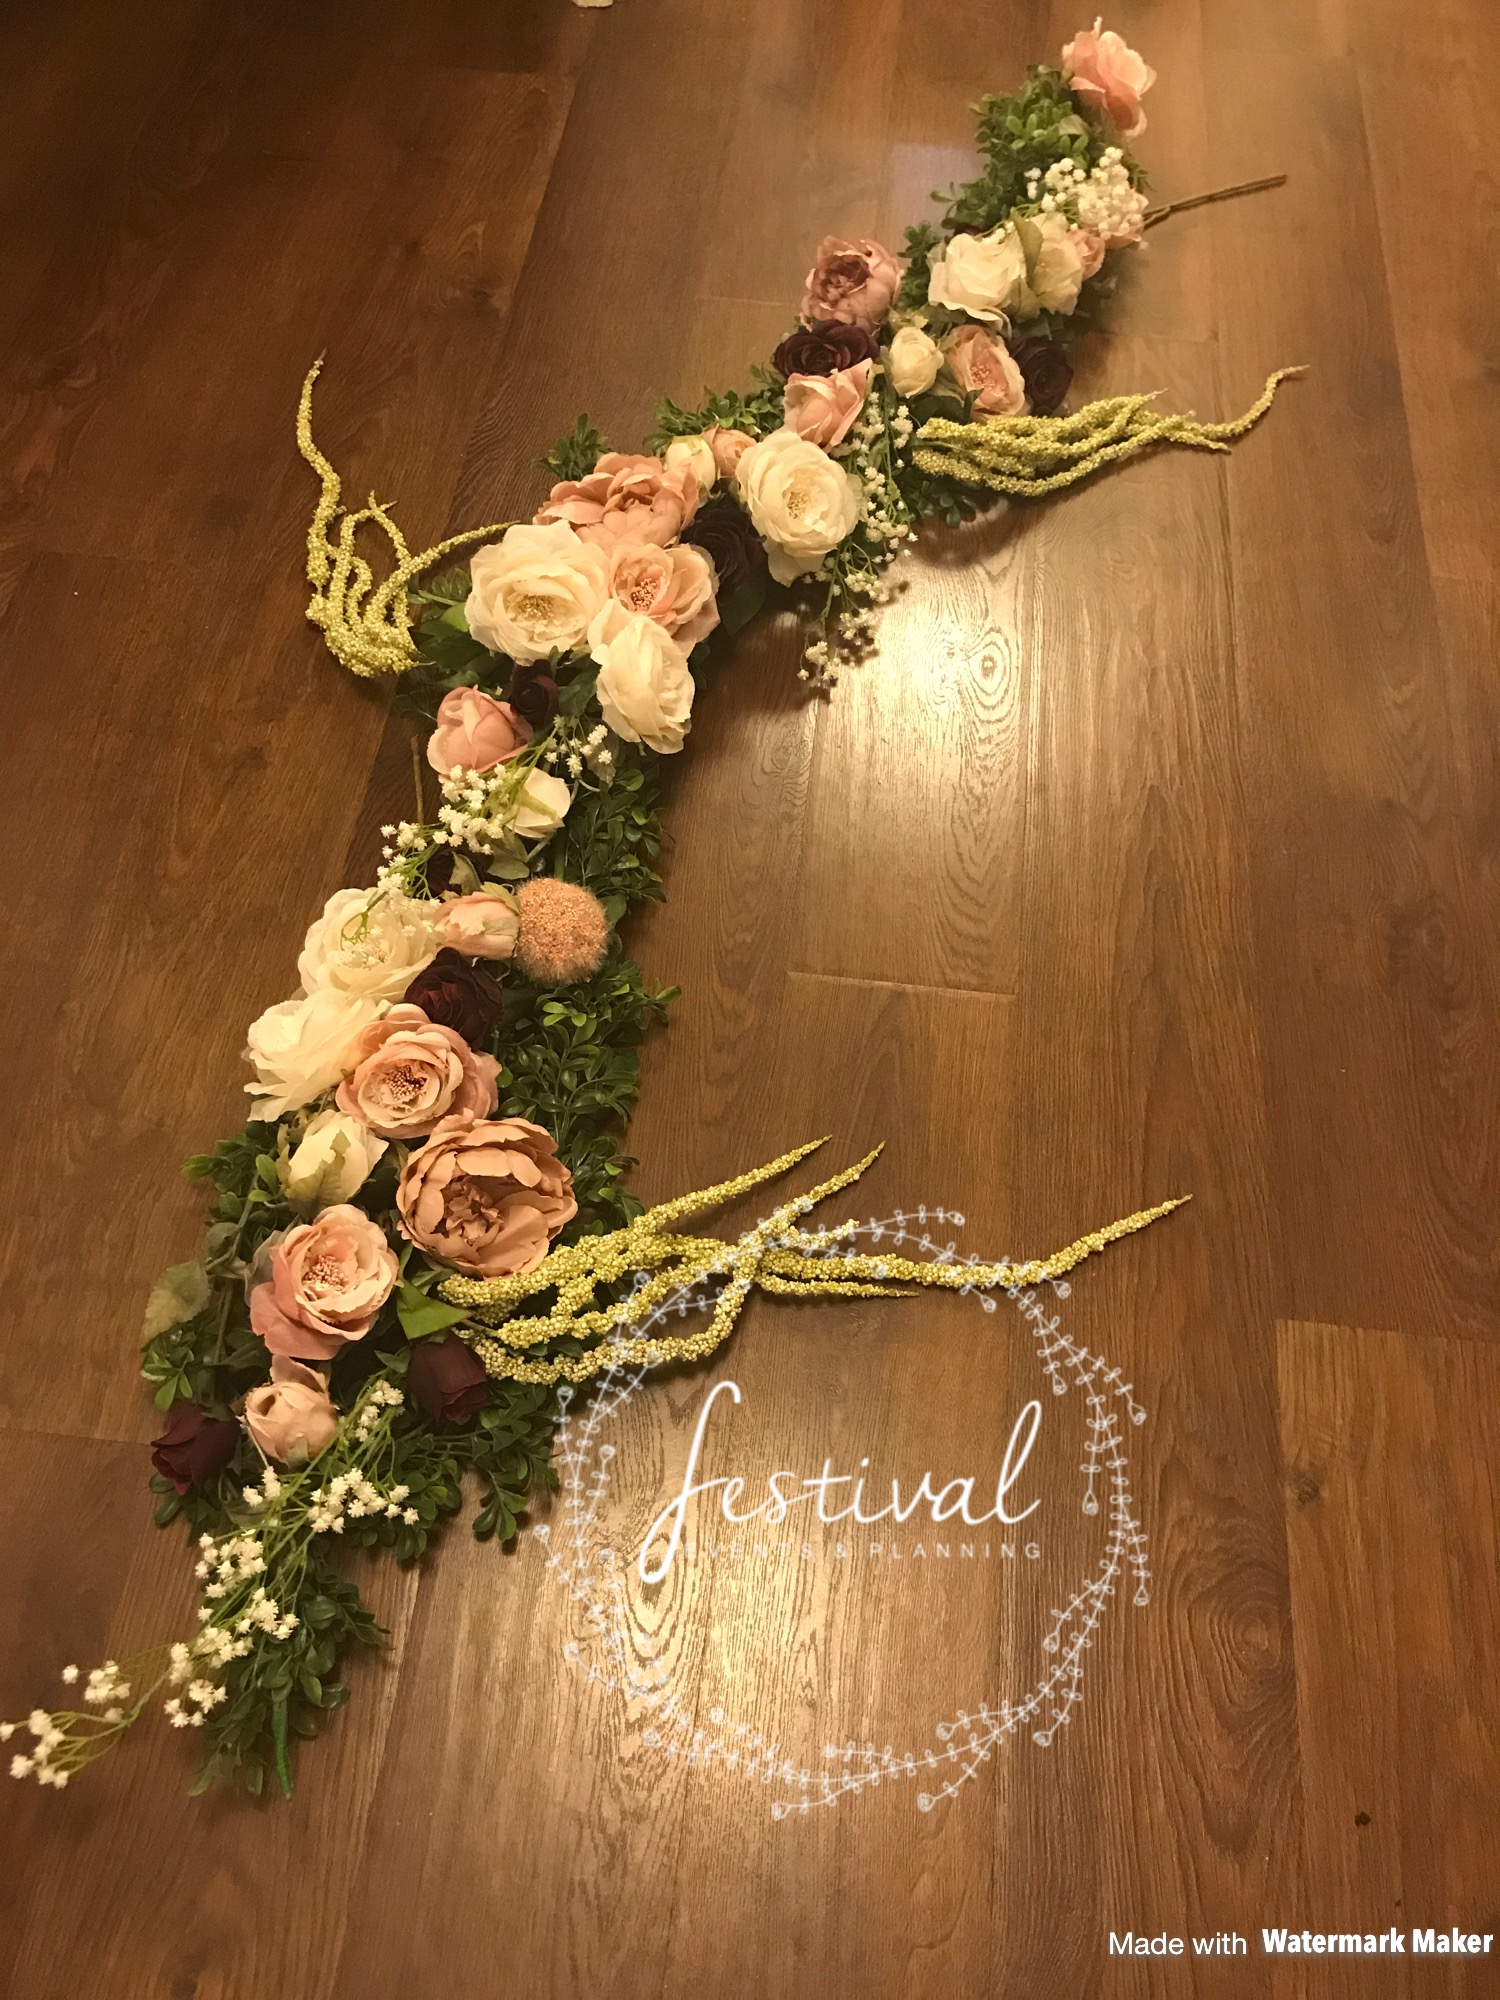 Nothing makes an entrance look more beautiful than floral swagging. Handmade by Festival HQ and matched to your colour scheme, table decor or to the colouring of your venue. Each piece is handmade, bespoke to your colour scheme and is a real statement piece for your event. Swagging starts from £50 for simplistic roses woven around the location of your choice. We think you will agree that these are absolutely gorgeous.